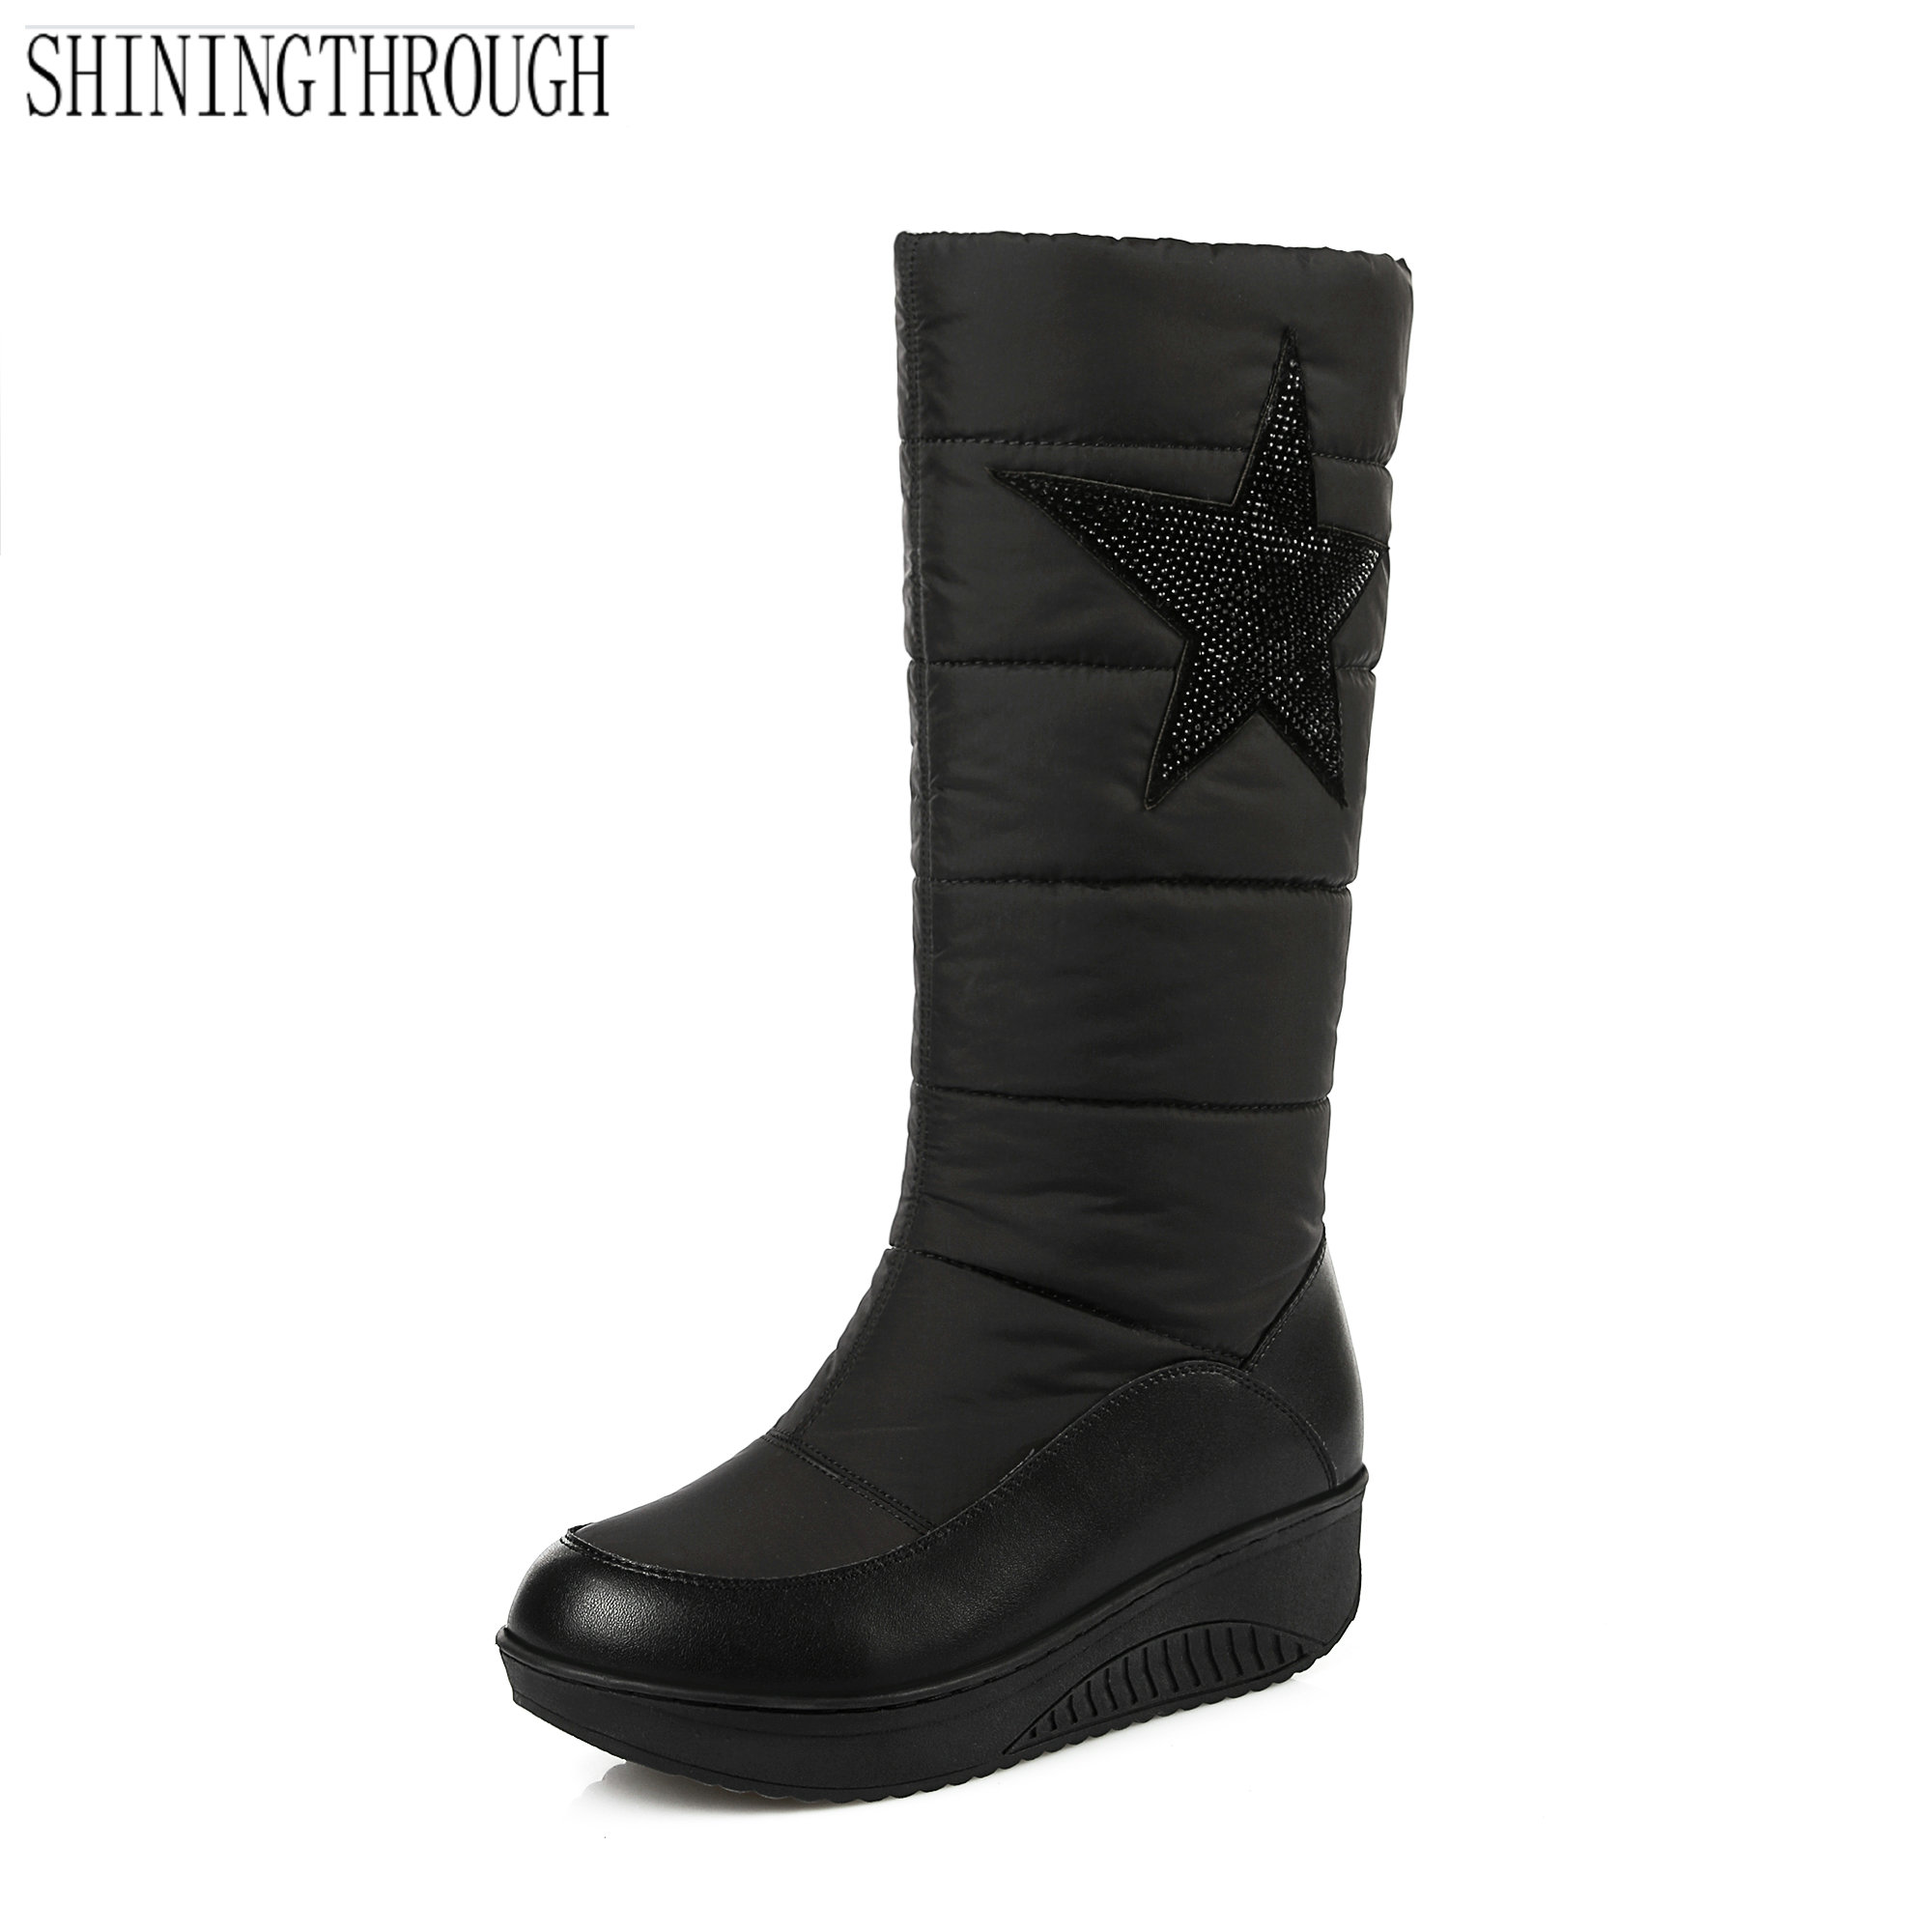 NEW fasion knee high boots low heels women boots winter warm snow boots flat platform shoes woman black white large size 34-43 winter warm snow boots cotton shoes flat heels knee high boots women boots wholesale high quality